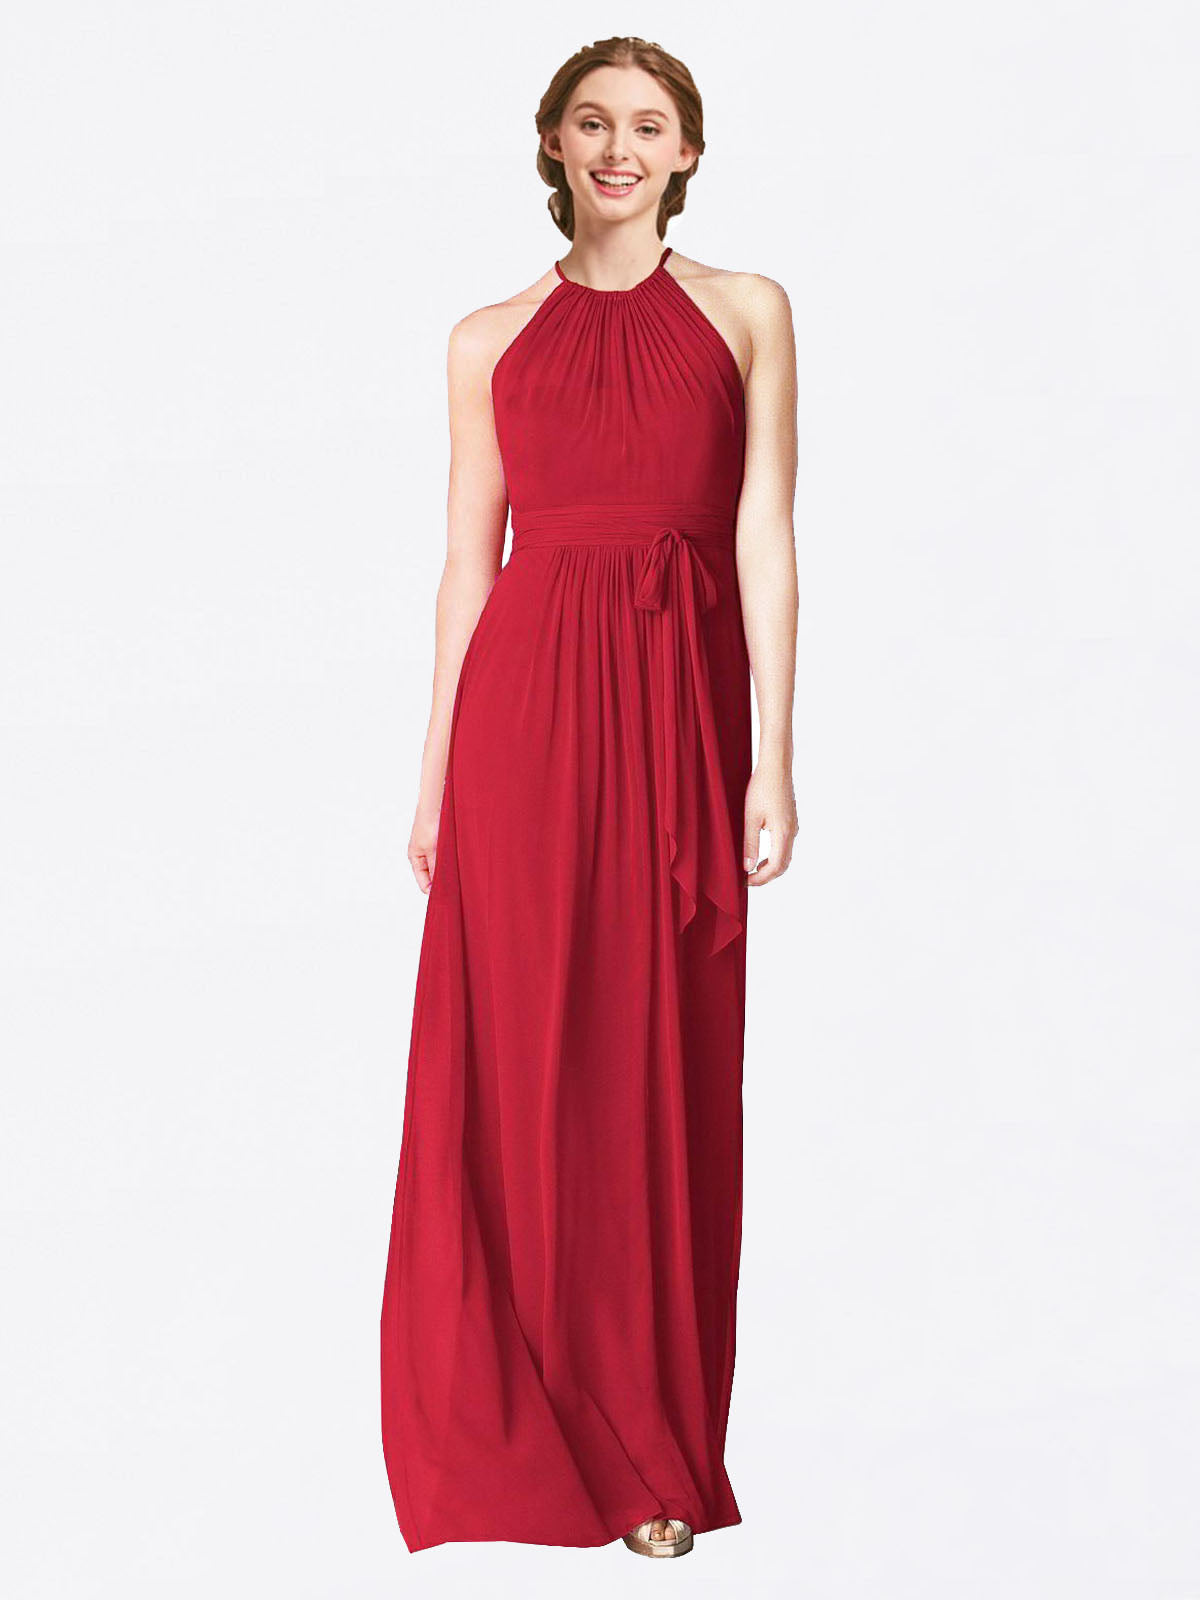 Long A-Line Halter Sleeveless Dark Red Chiffon Bridesmaid Dress Laura